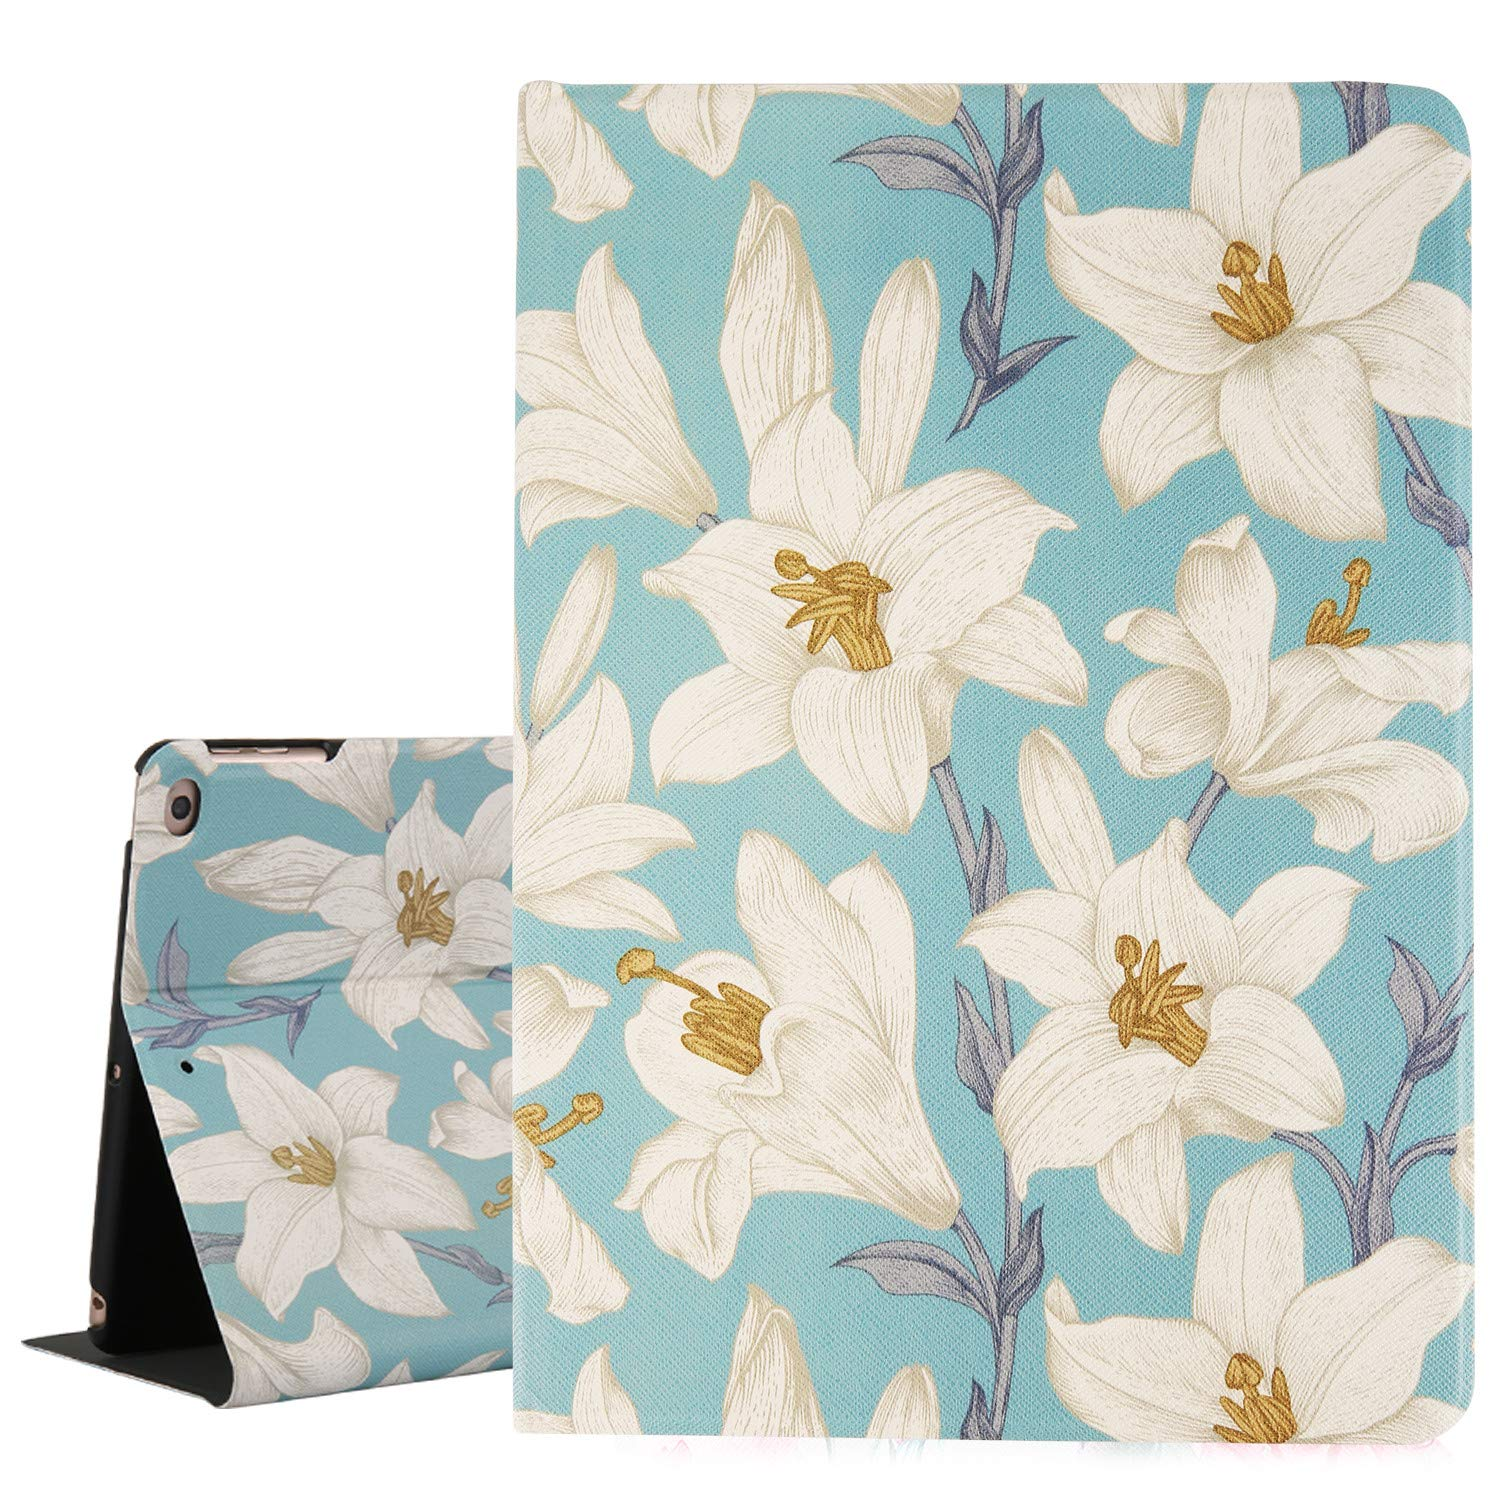 Hi Space Lily Flower iPad 9.7 Case,White Floral Light Blue Folio Stand Smart Tablet Case Cover for iPad Air 1/2 5th/6th Gen 2017/2018 Auto Sleep Wakeup